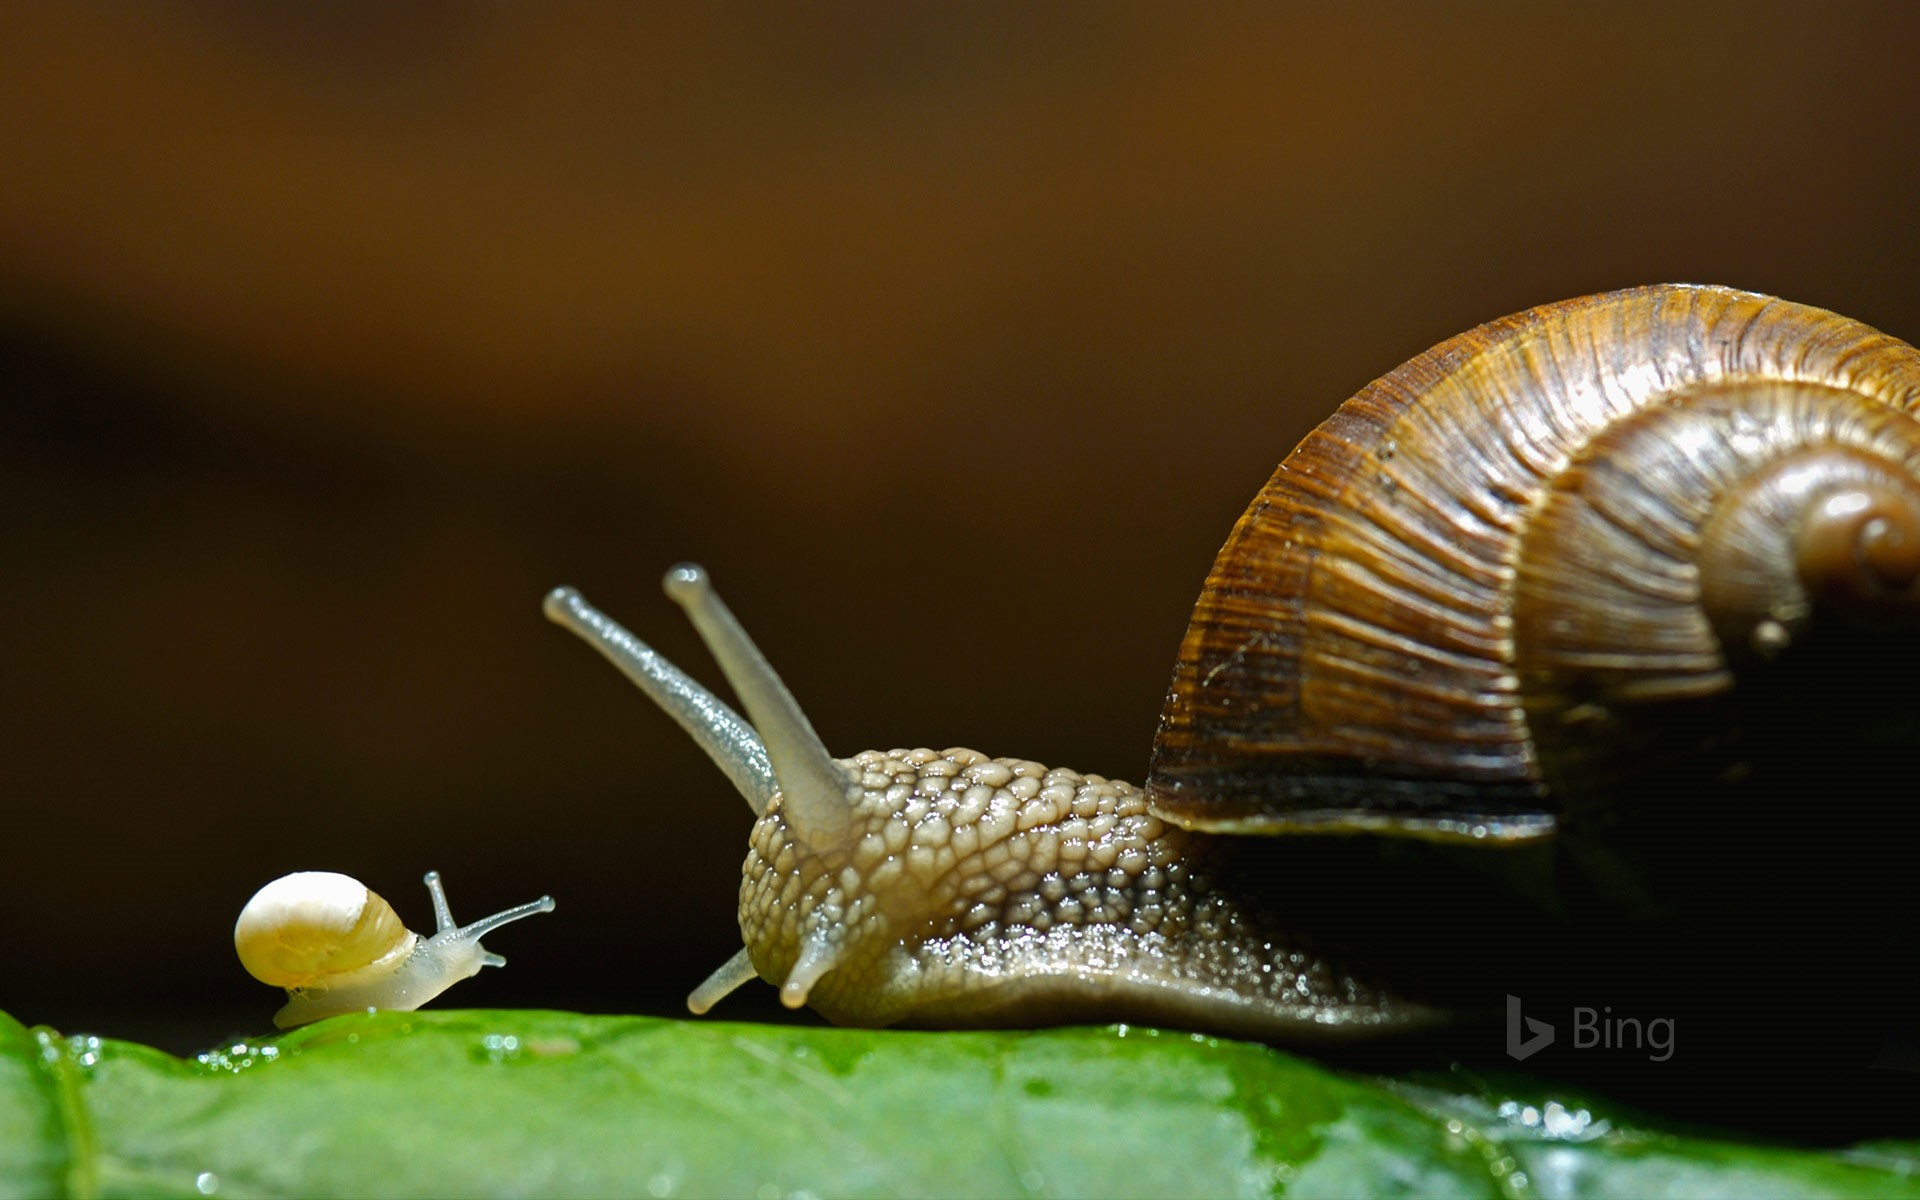 Burgundy snails, also called edible snails